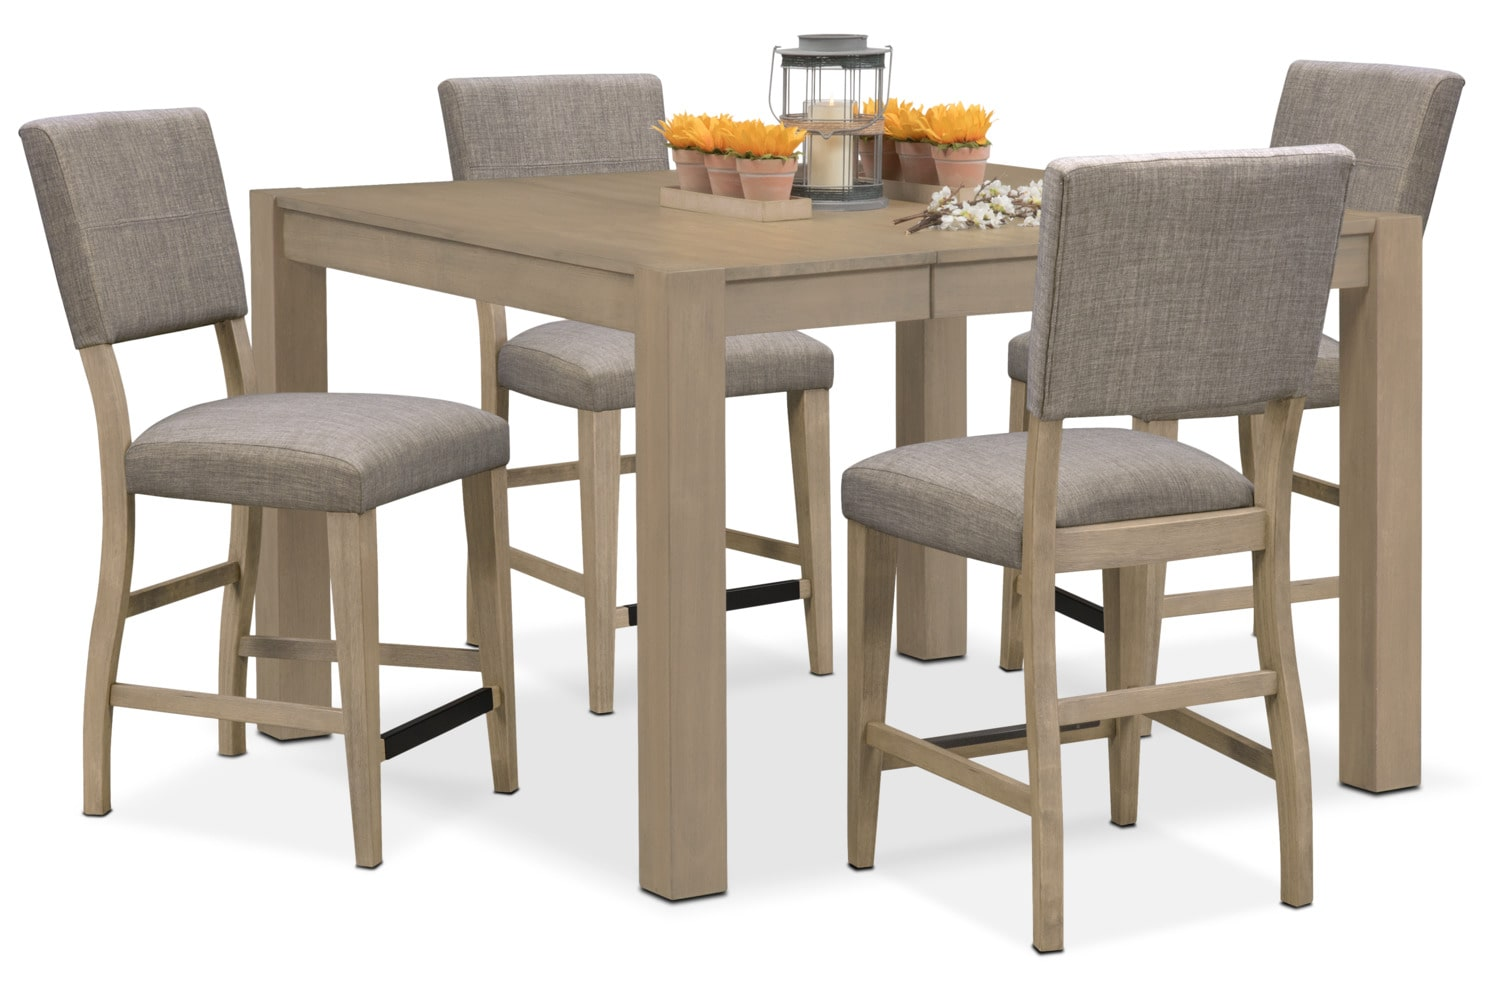 fascinating american signature dining room set images